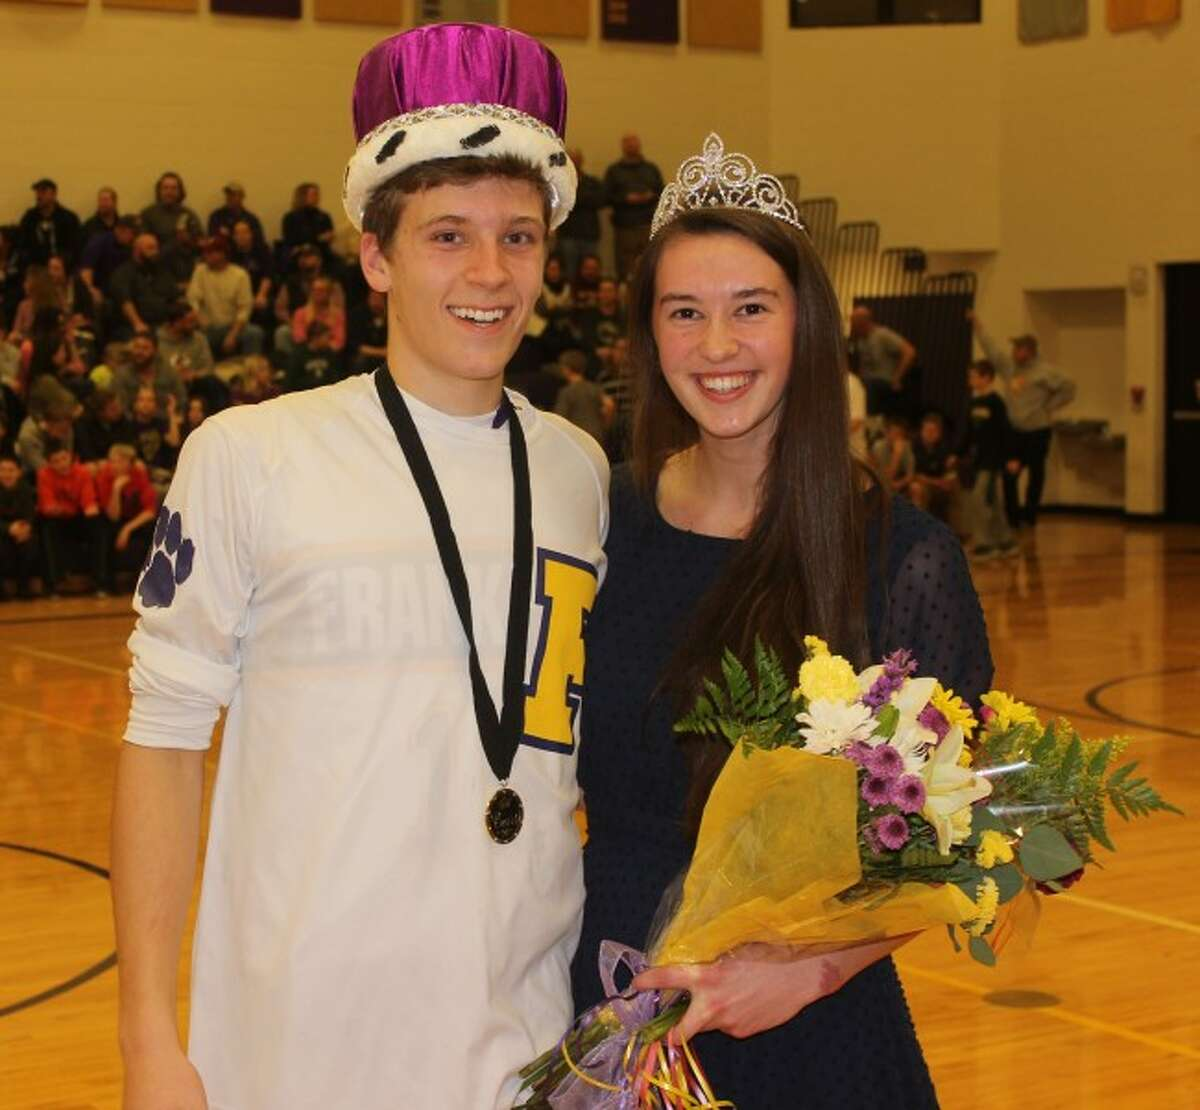 THEIR HOUR: Nate Frieswyk and MacKenna Kelly were crowned snowcoming king and queen during halftime of the boys varsity basketball game against Glen Lake on Friday.